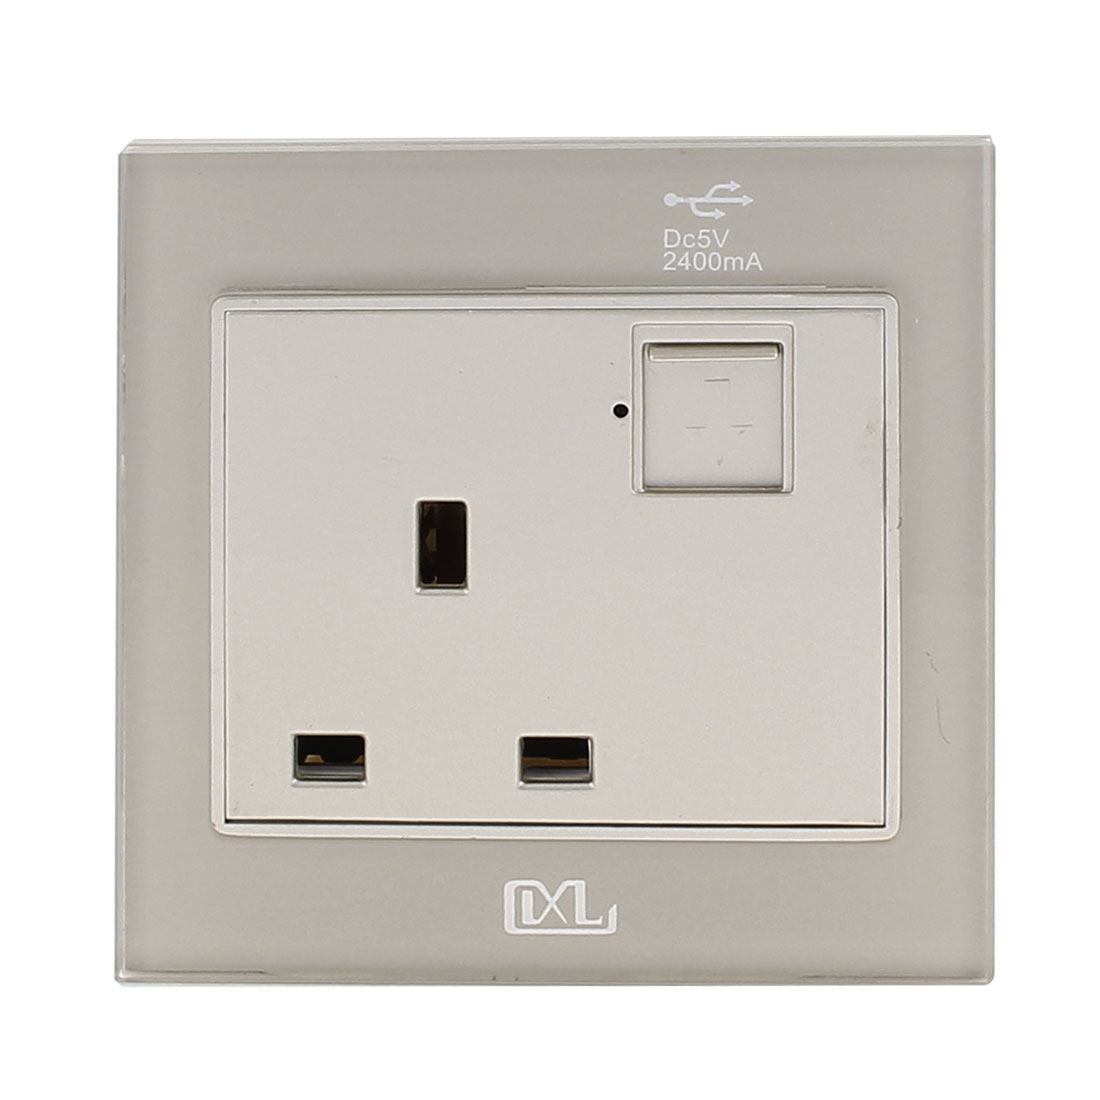 AC 110V-250V UK Socket 2 USB Port 5VDC 2400mA Charger Power LED Lamp Wall Outlet